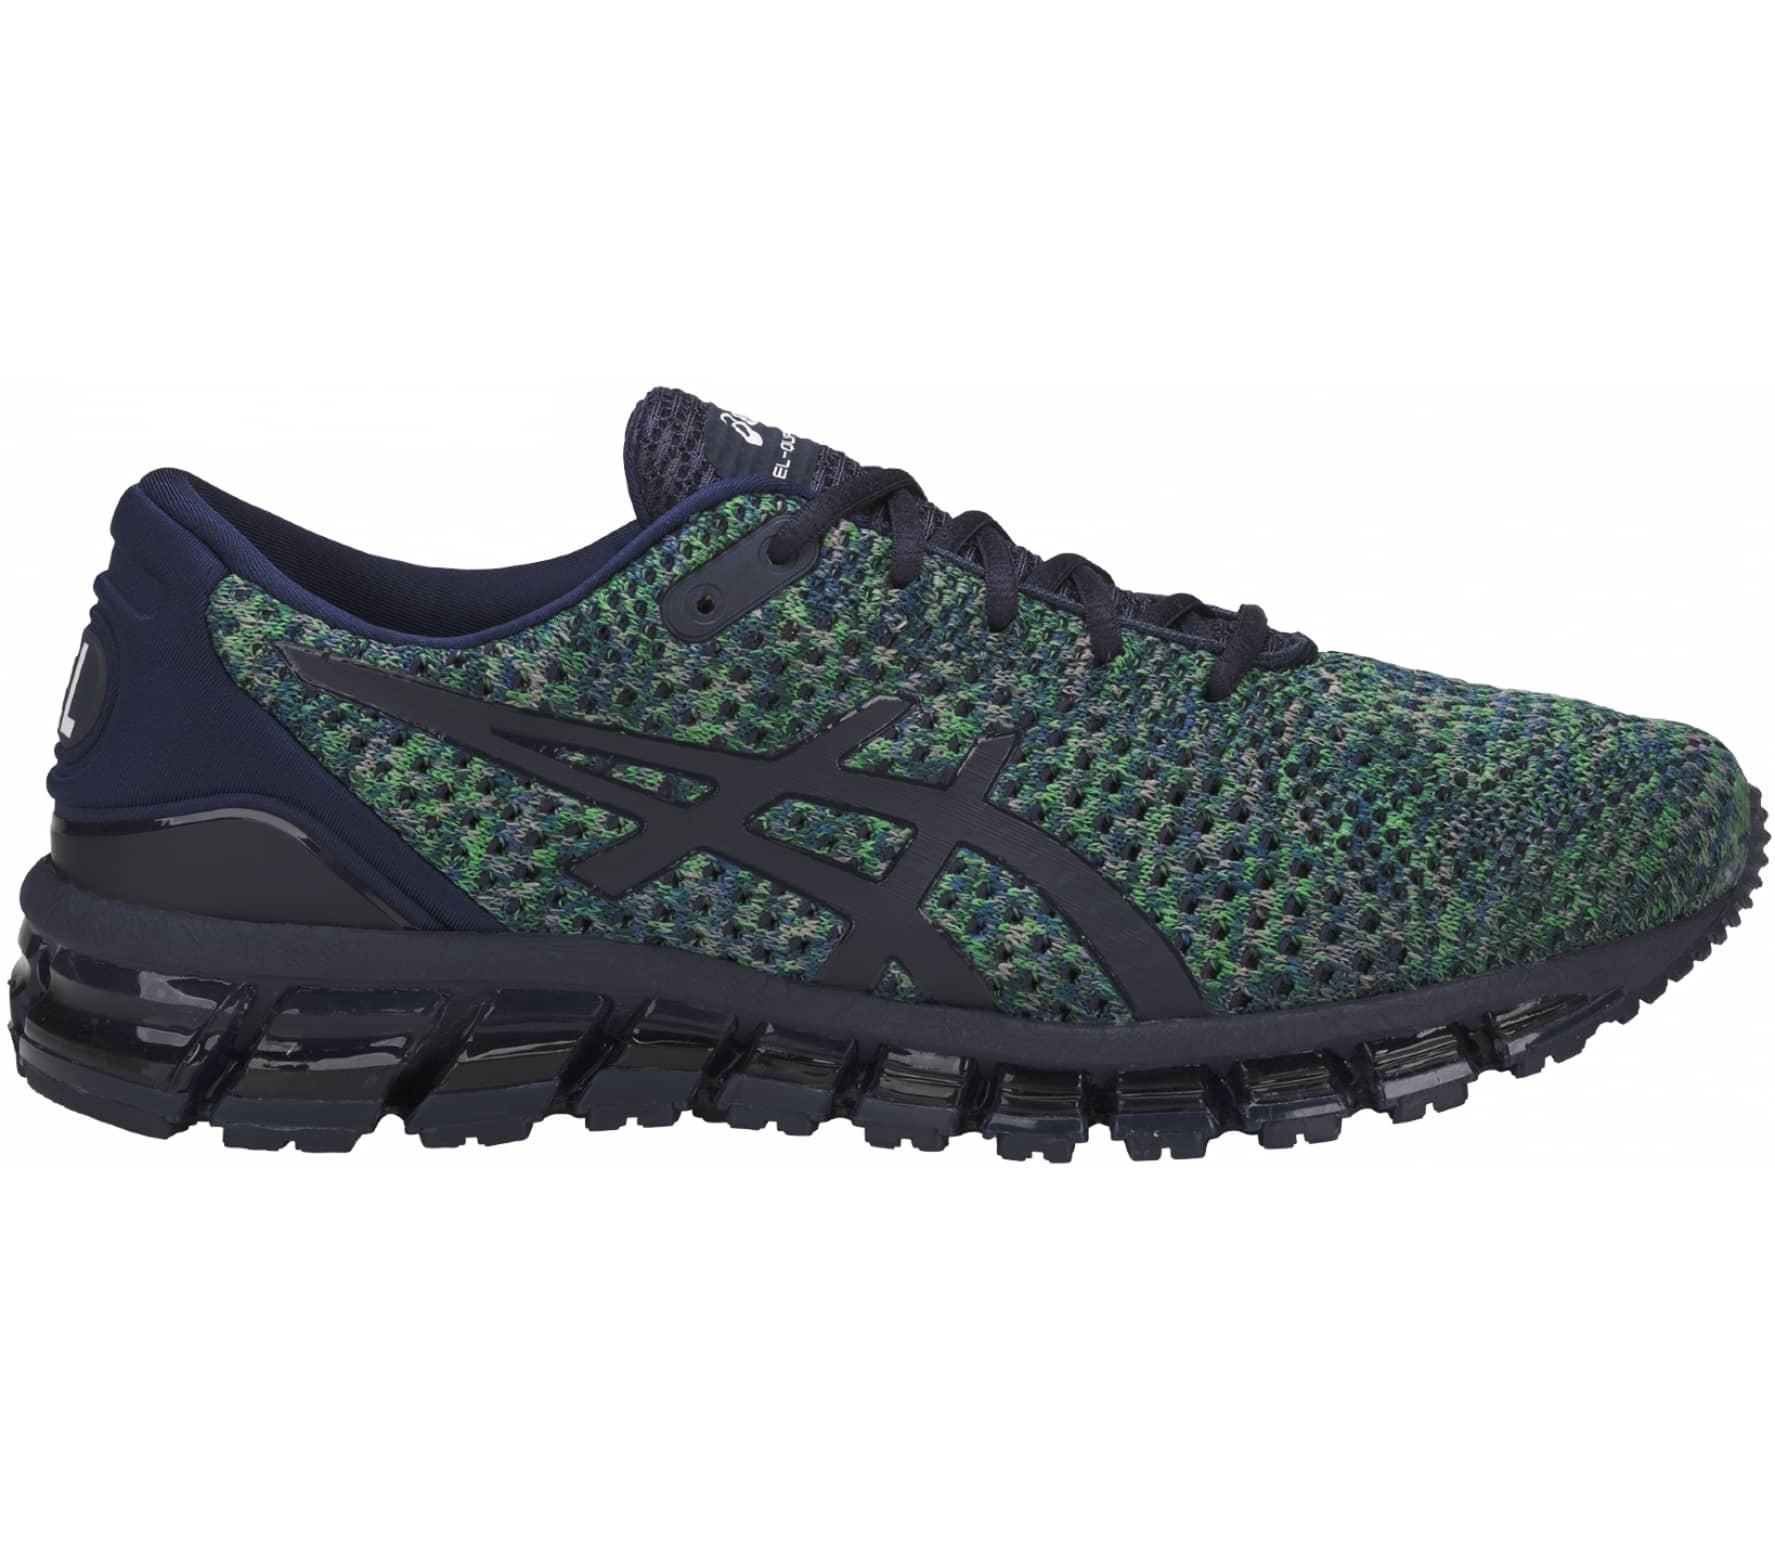 huge selection of 605e0 cf362 ASICS - GEL-Quantum 360 Knit 2 men s running shoes (dark blue green